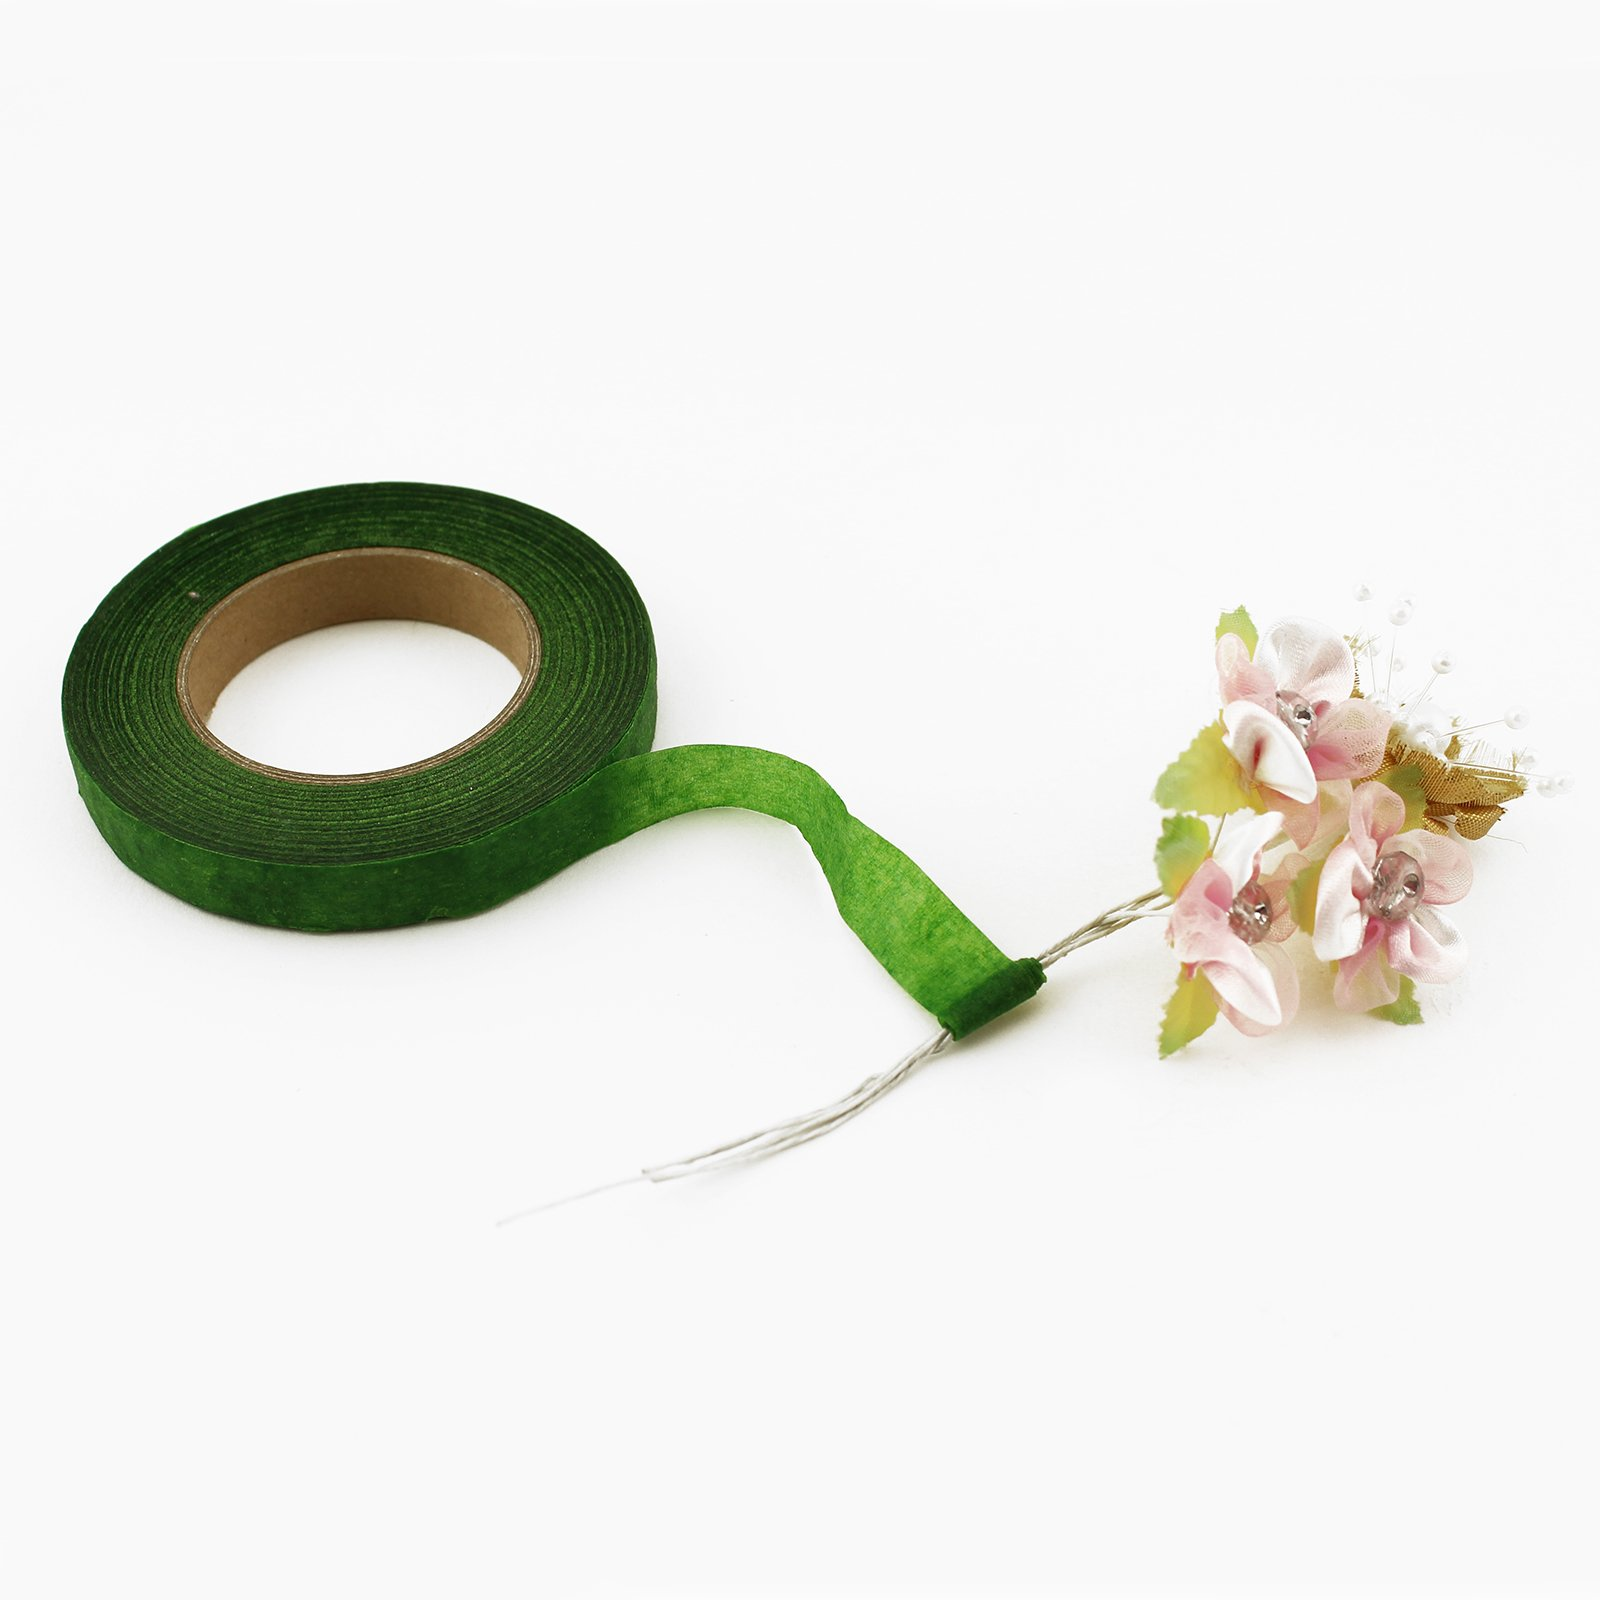 Buthneil 8 Pack Floral Tape Stem Wrap for Bouquet Flowers 1//2 x 30 Yards Green